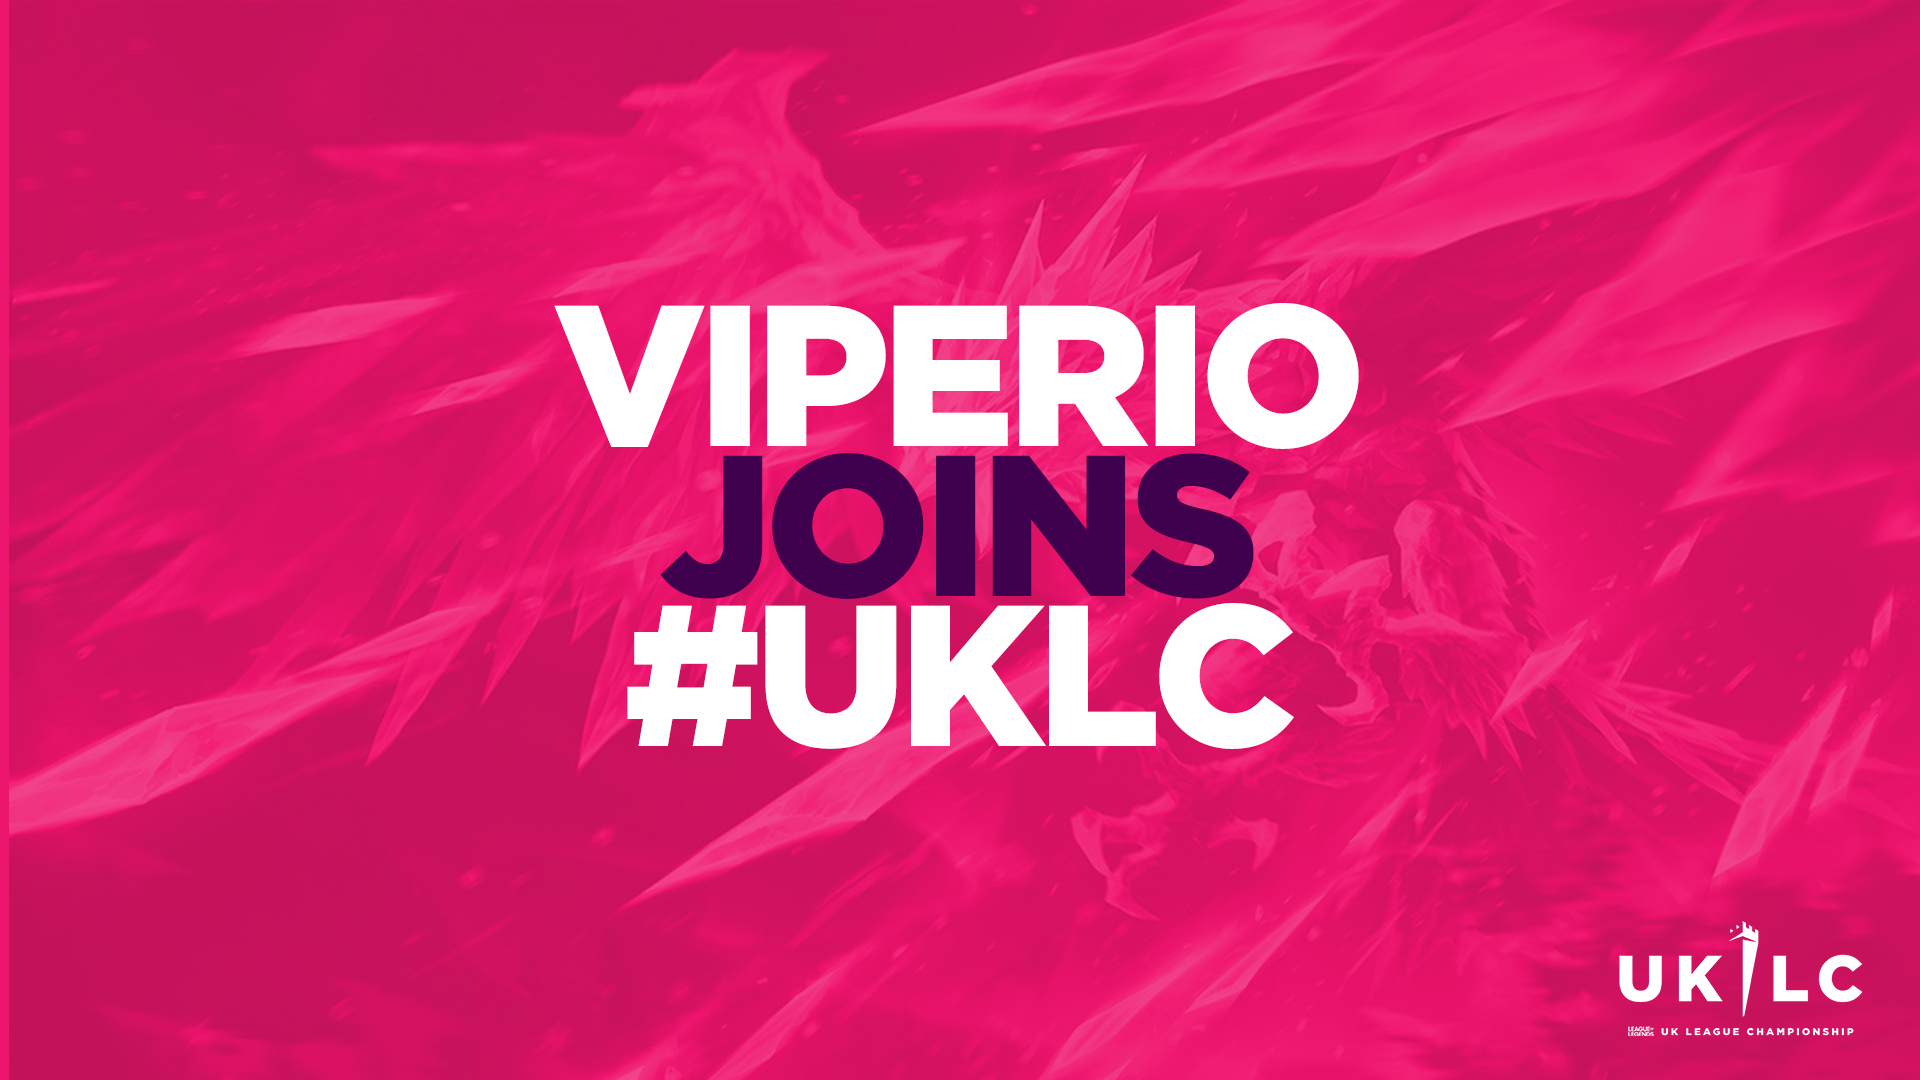 Viperio joins the UKLC for Summer 2021